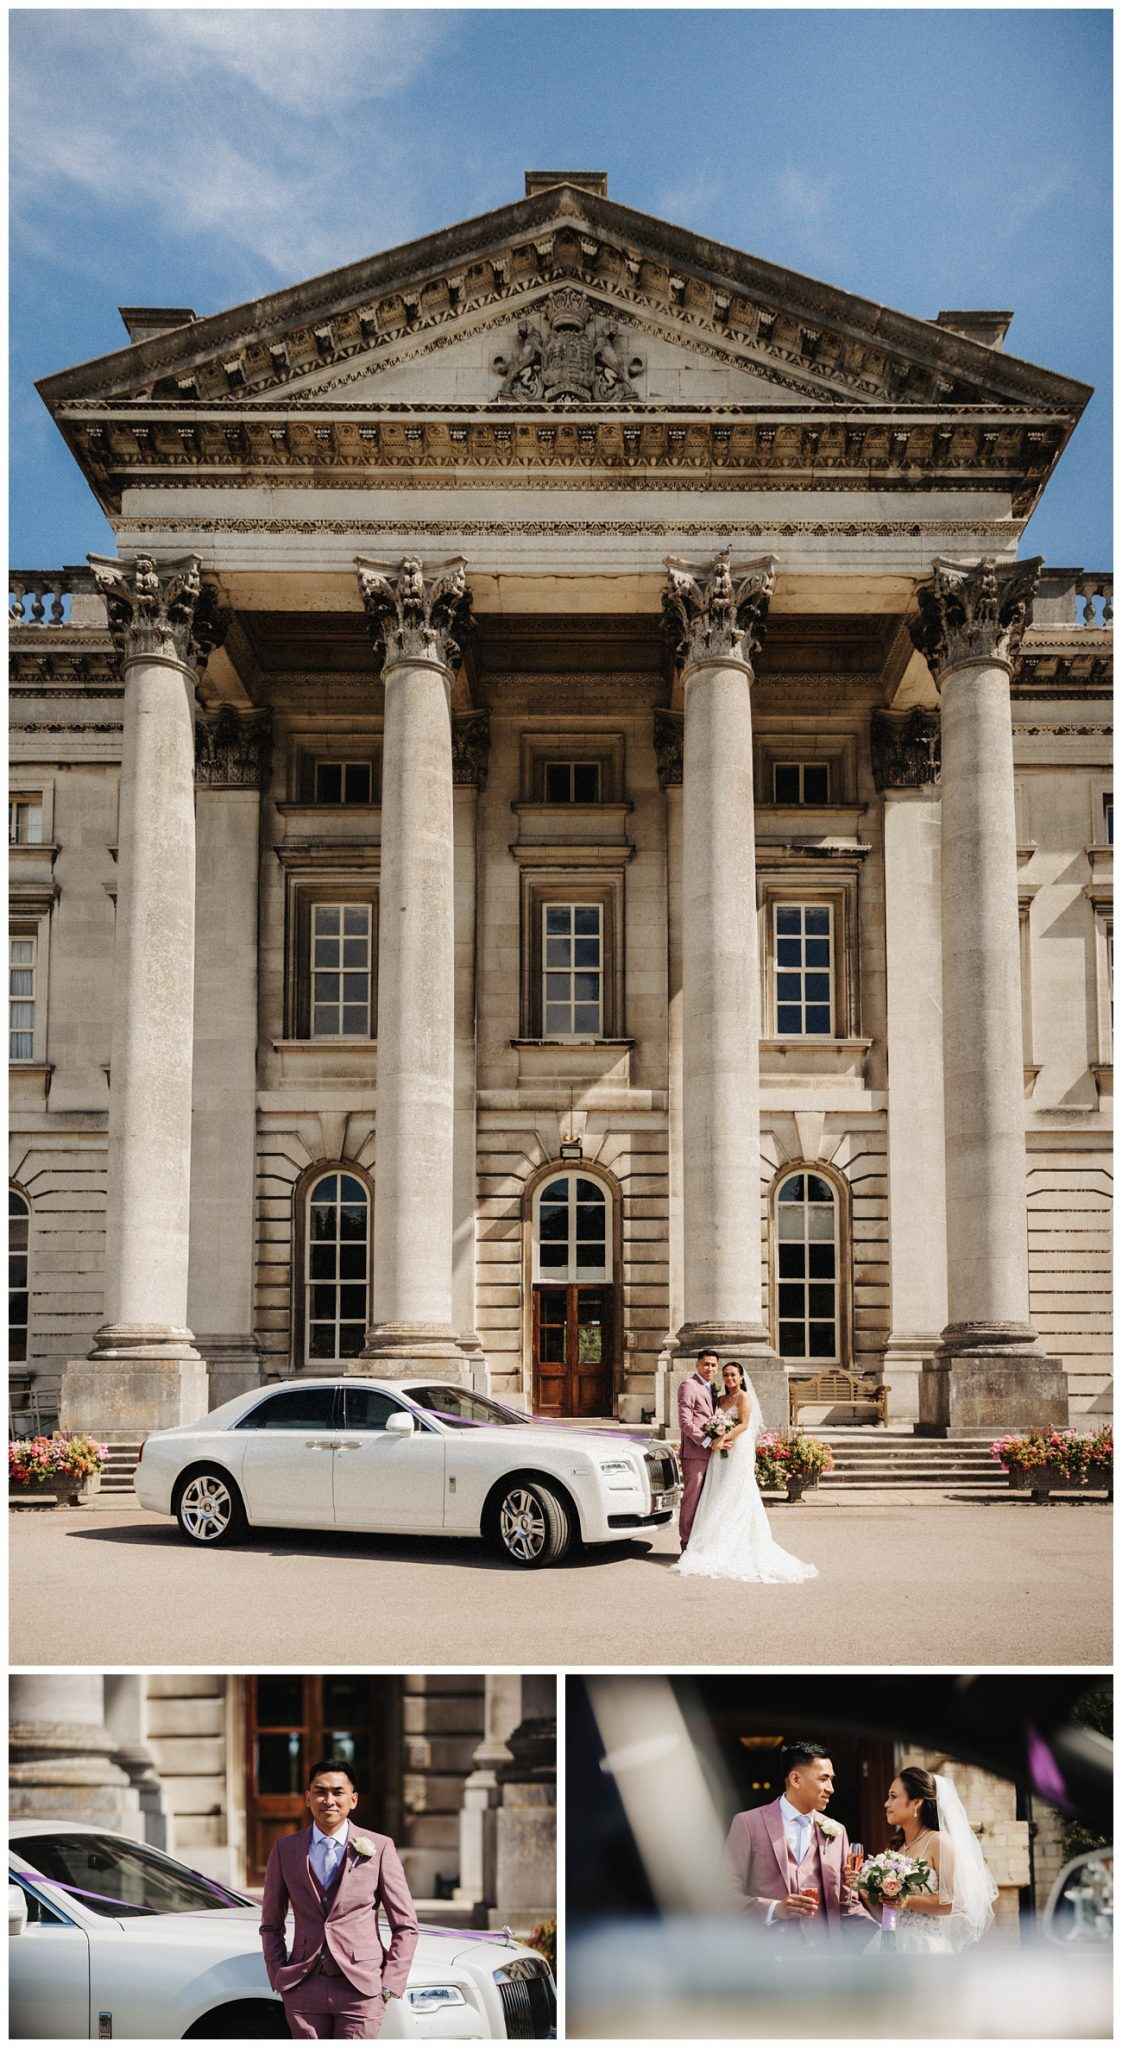 The bride and groom pose by their wedding car outside the Moor Park Mansion